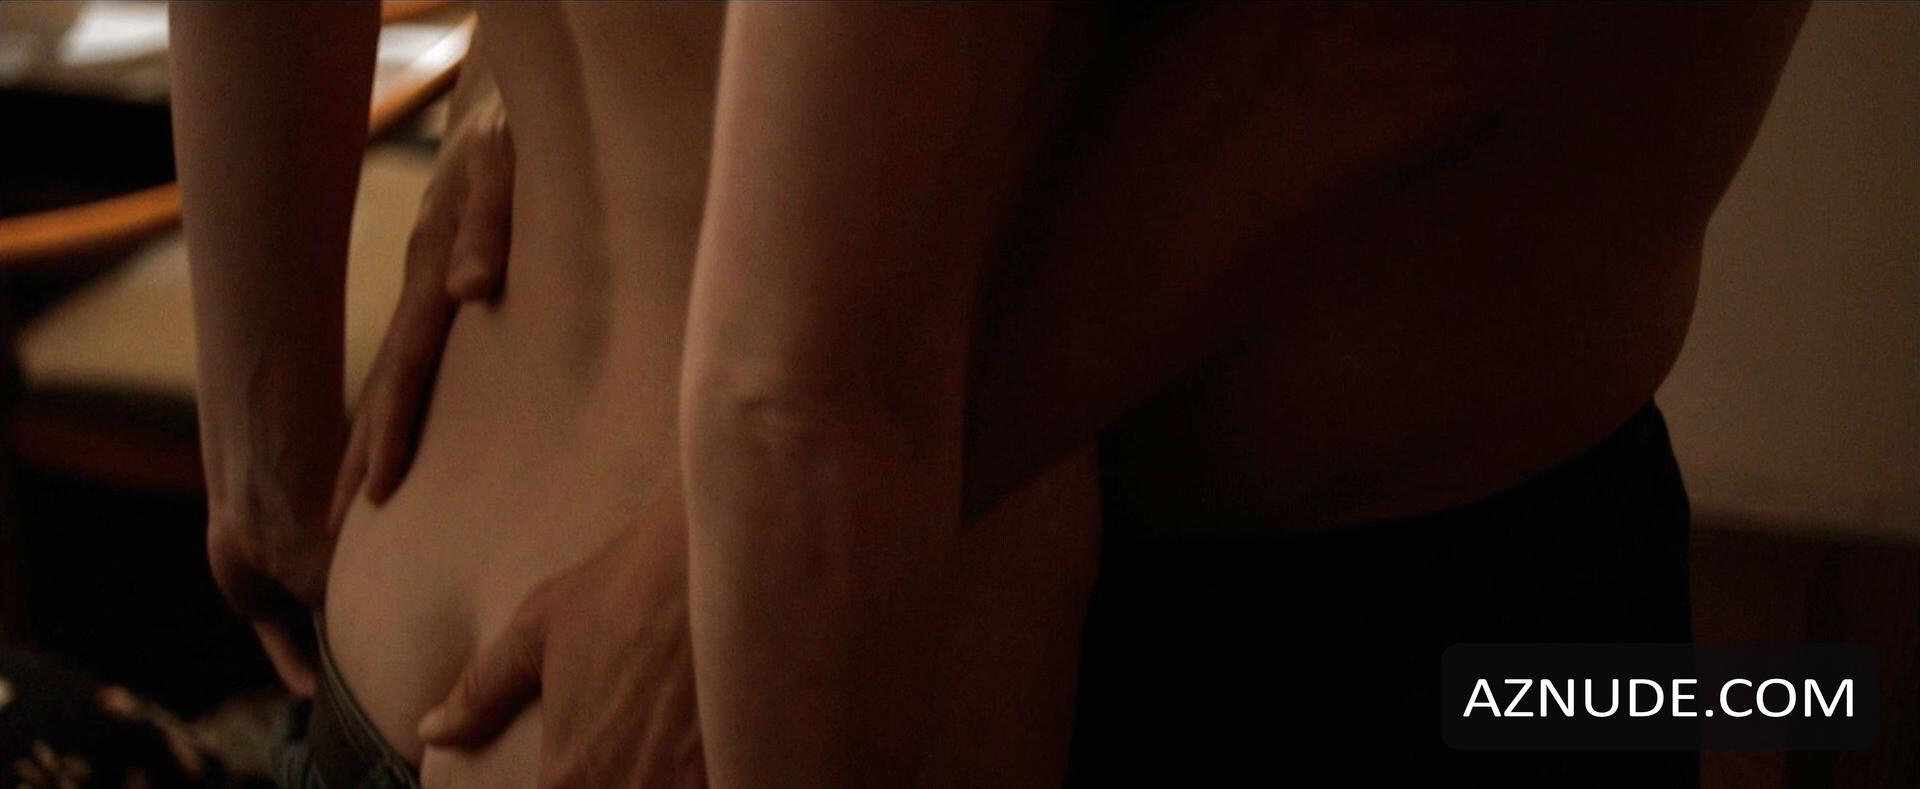 emily blunt ass in underwear